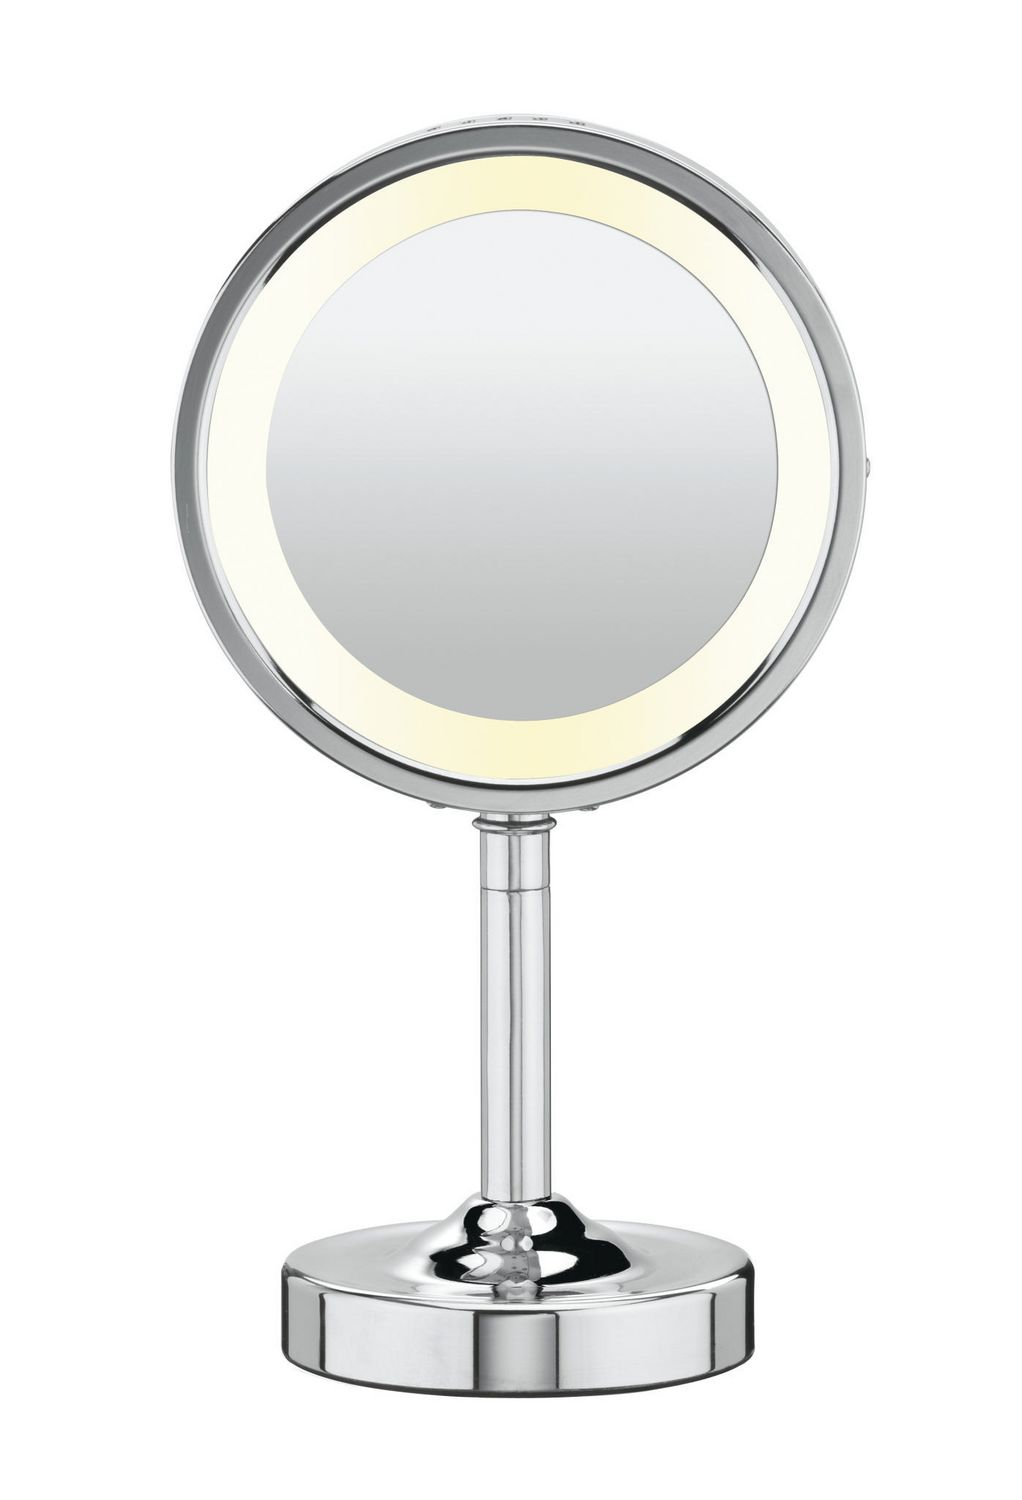 Reflections By Conair Make Up Mirror Walmart Canada